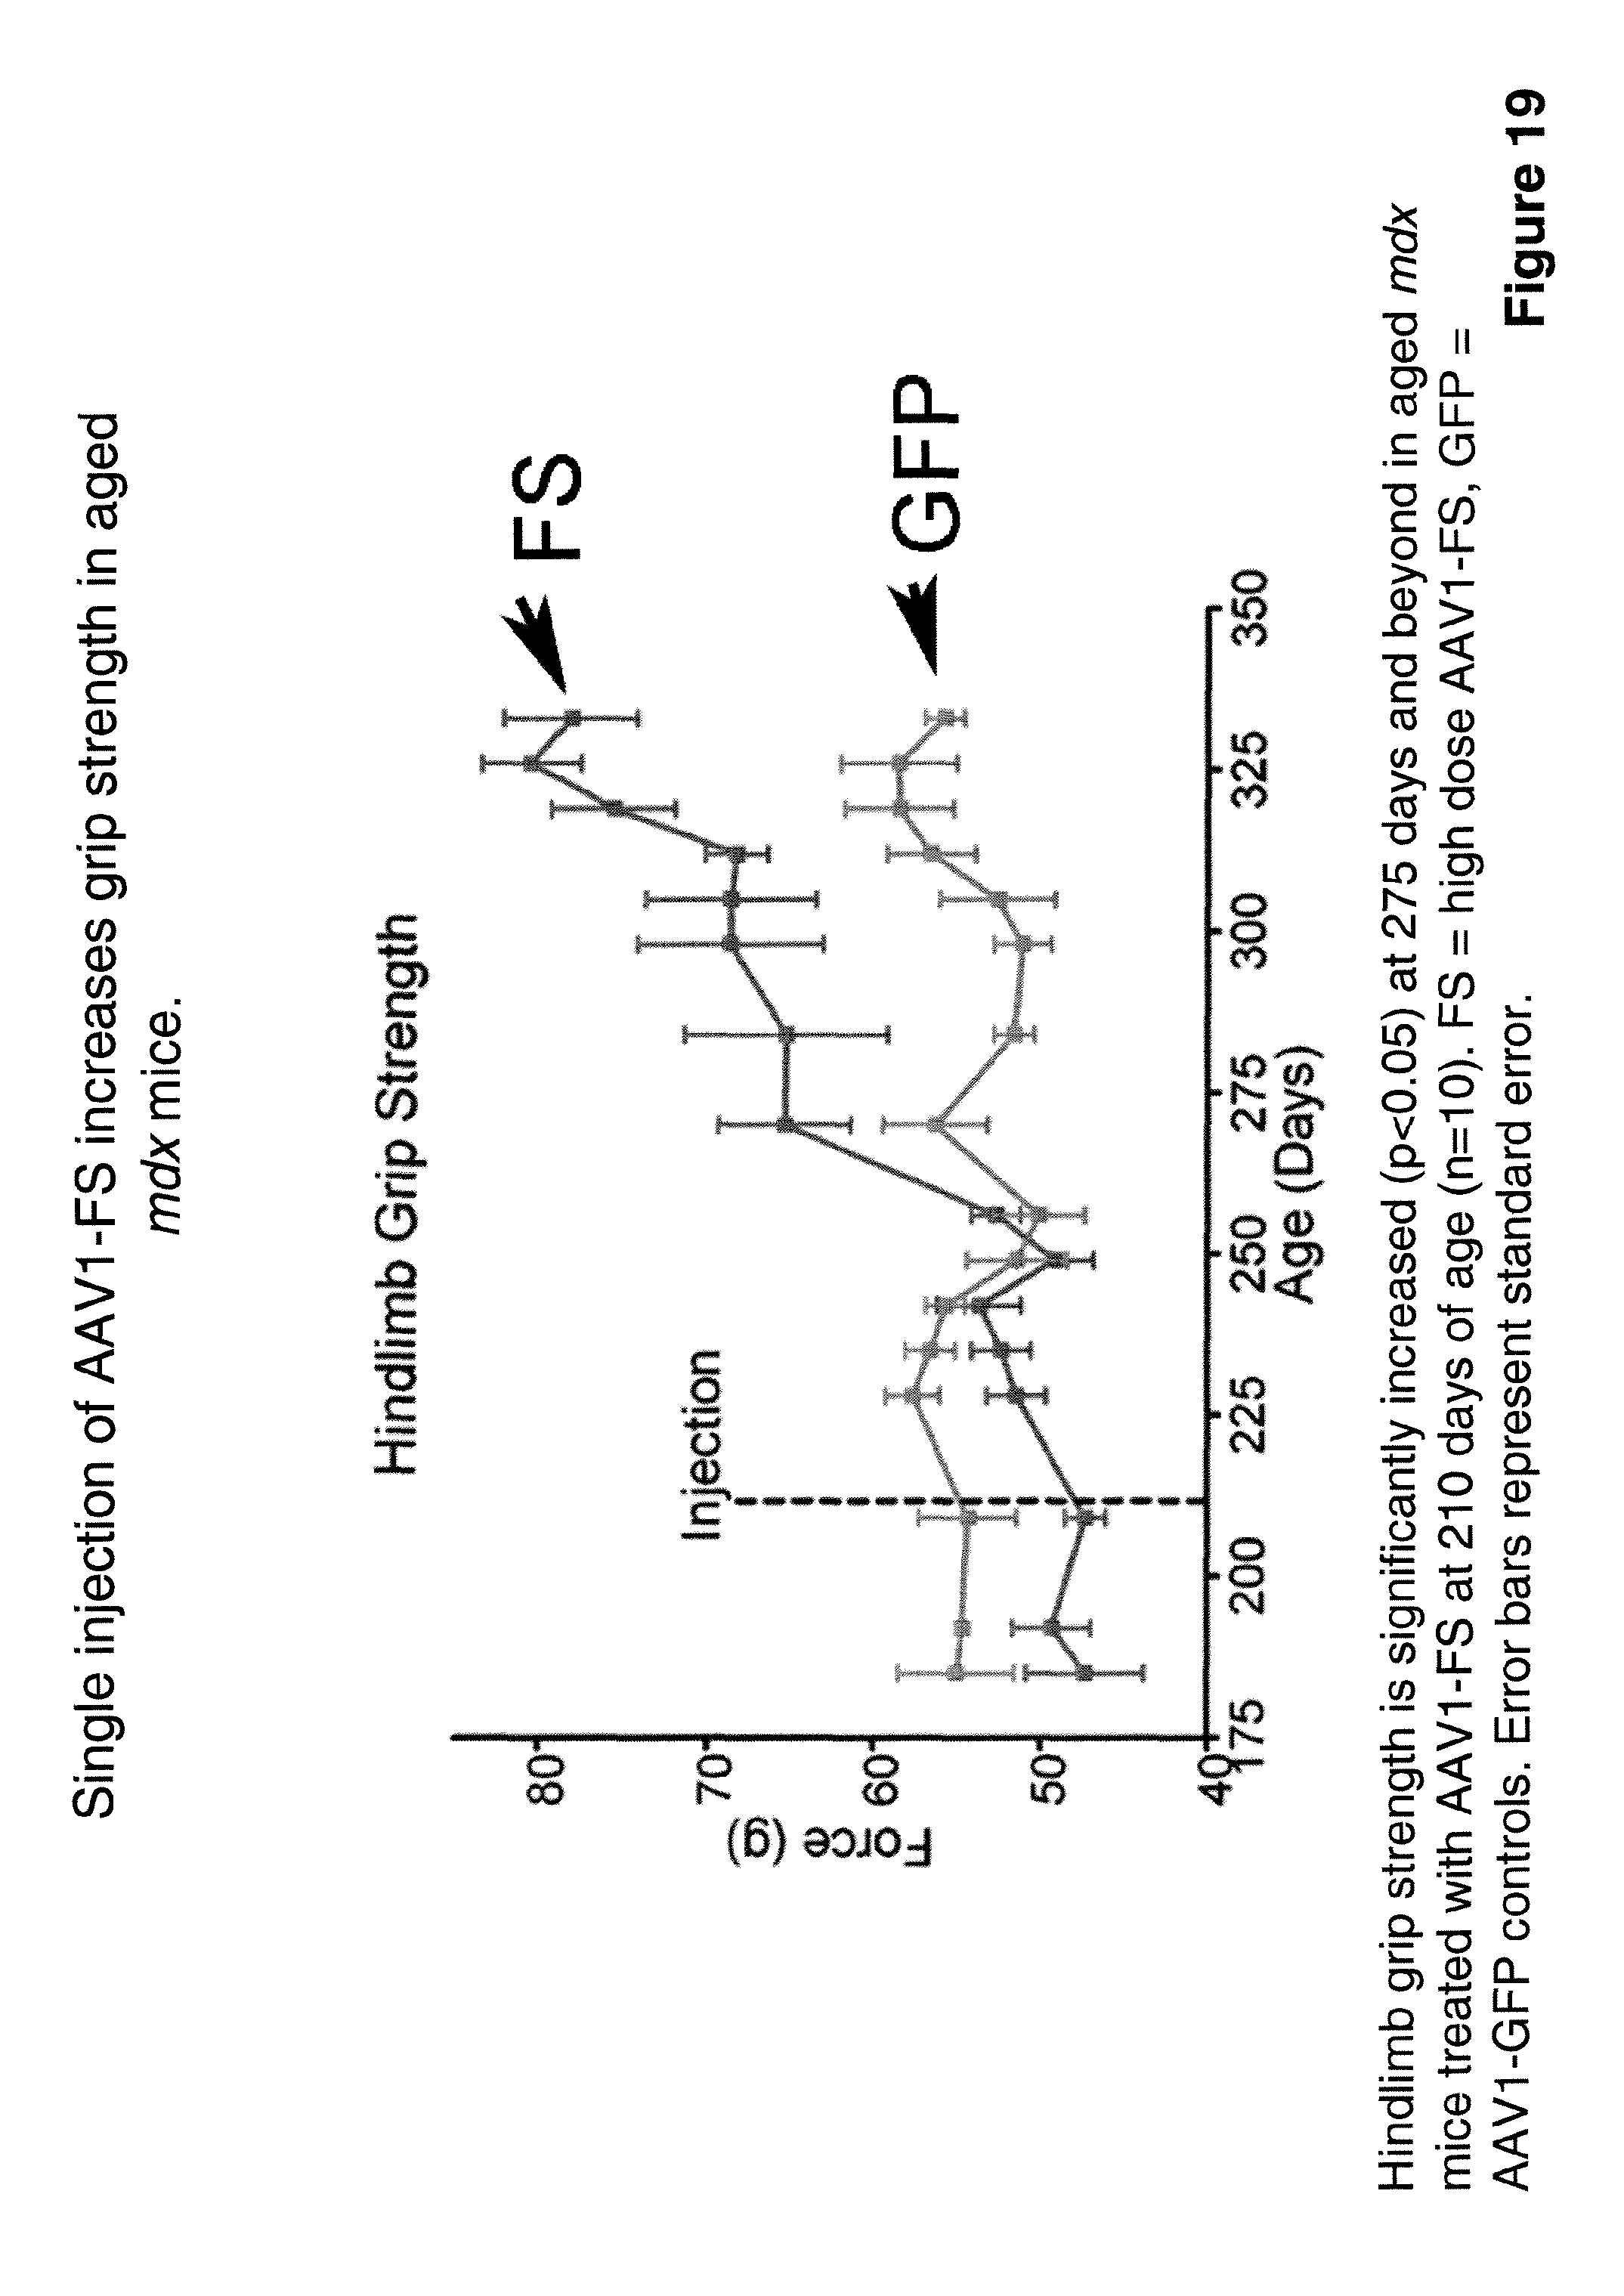 US8895309B2 - Myostatin inhibition for enhancing muscle and